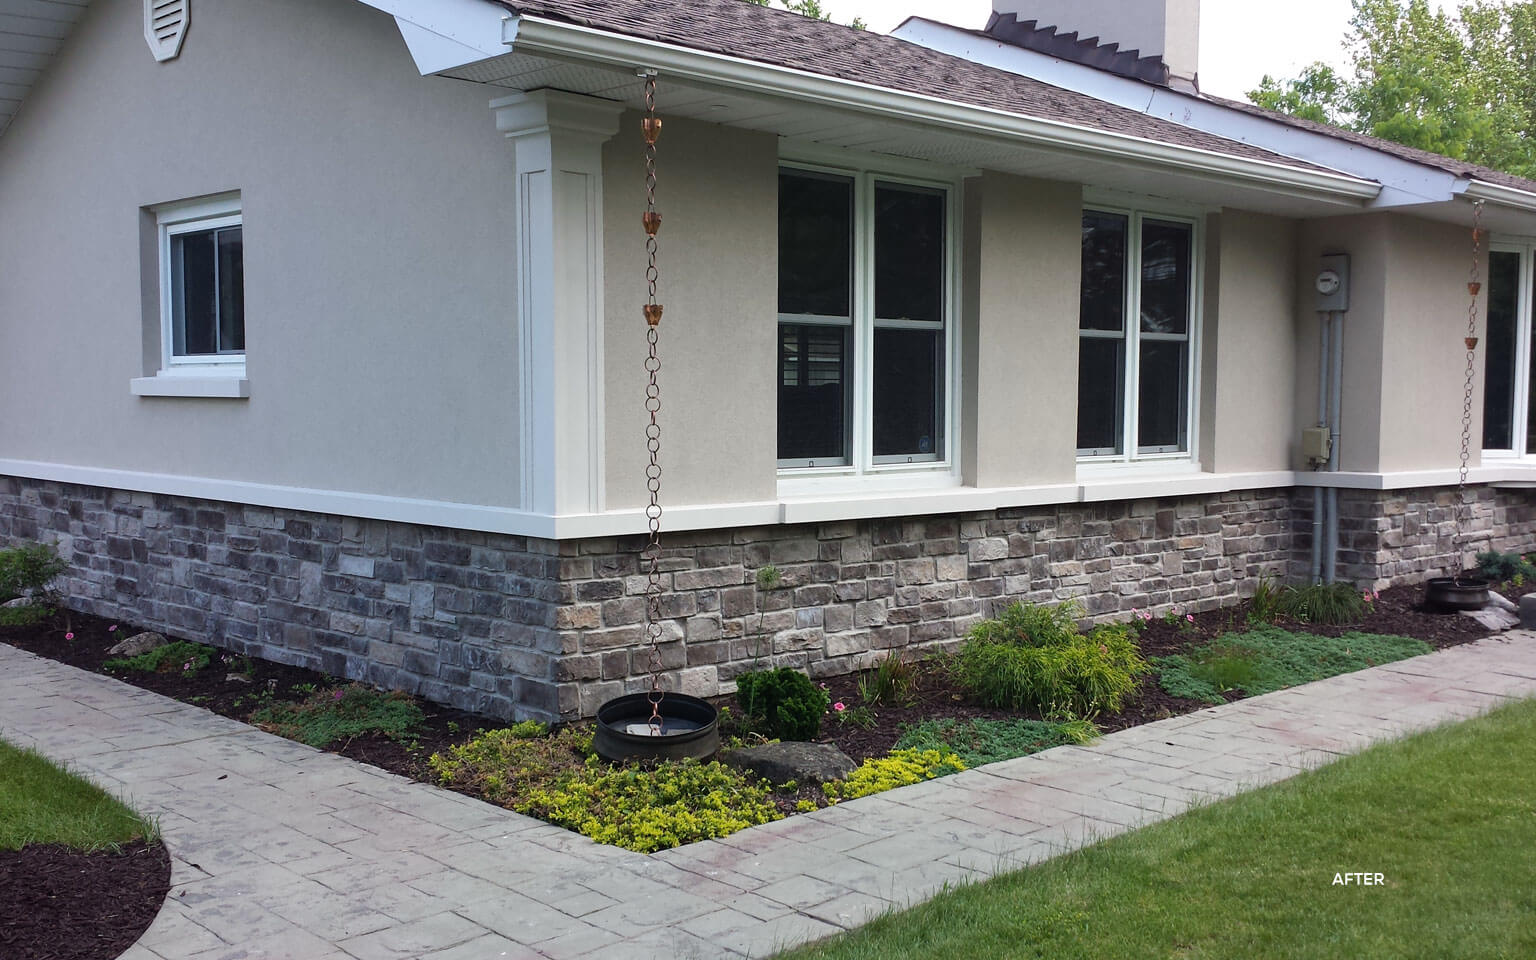 Exterior Stone And Stucco Finish After Example